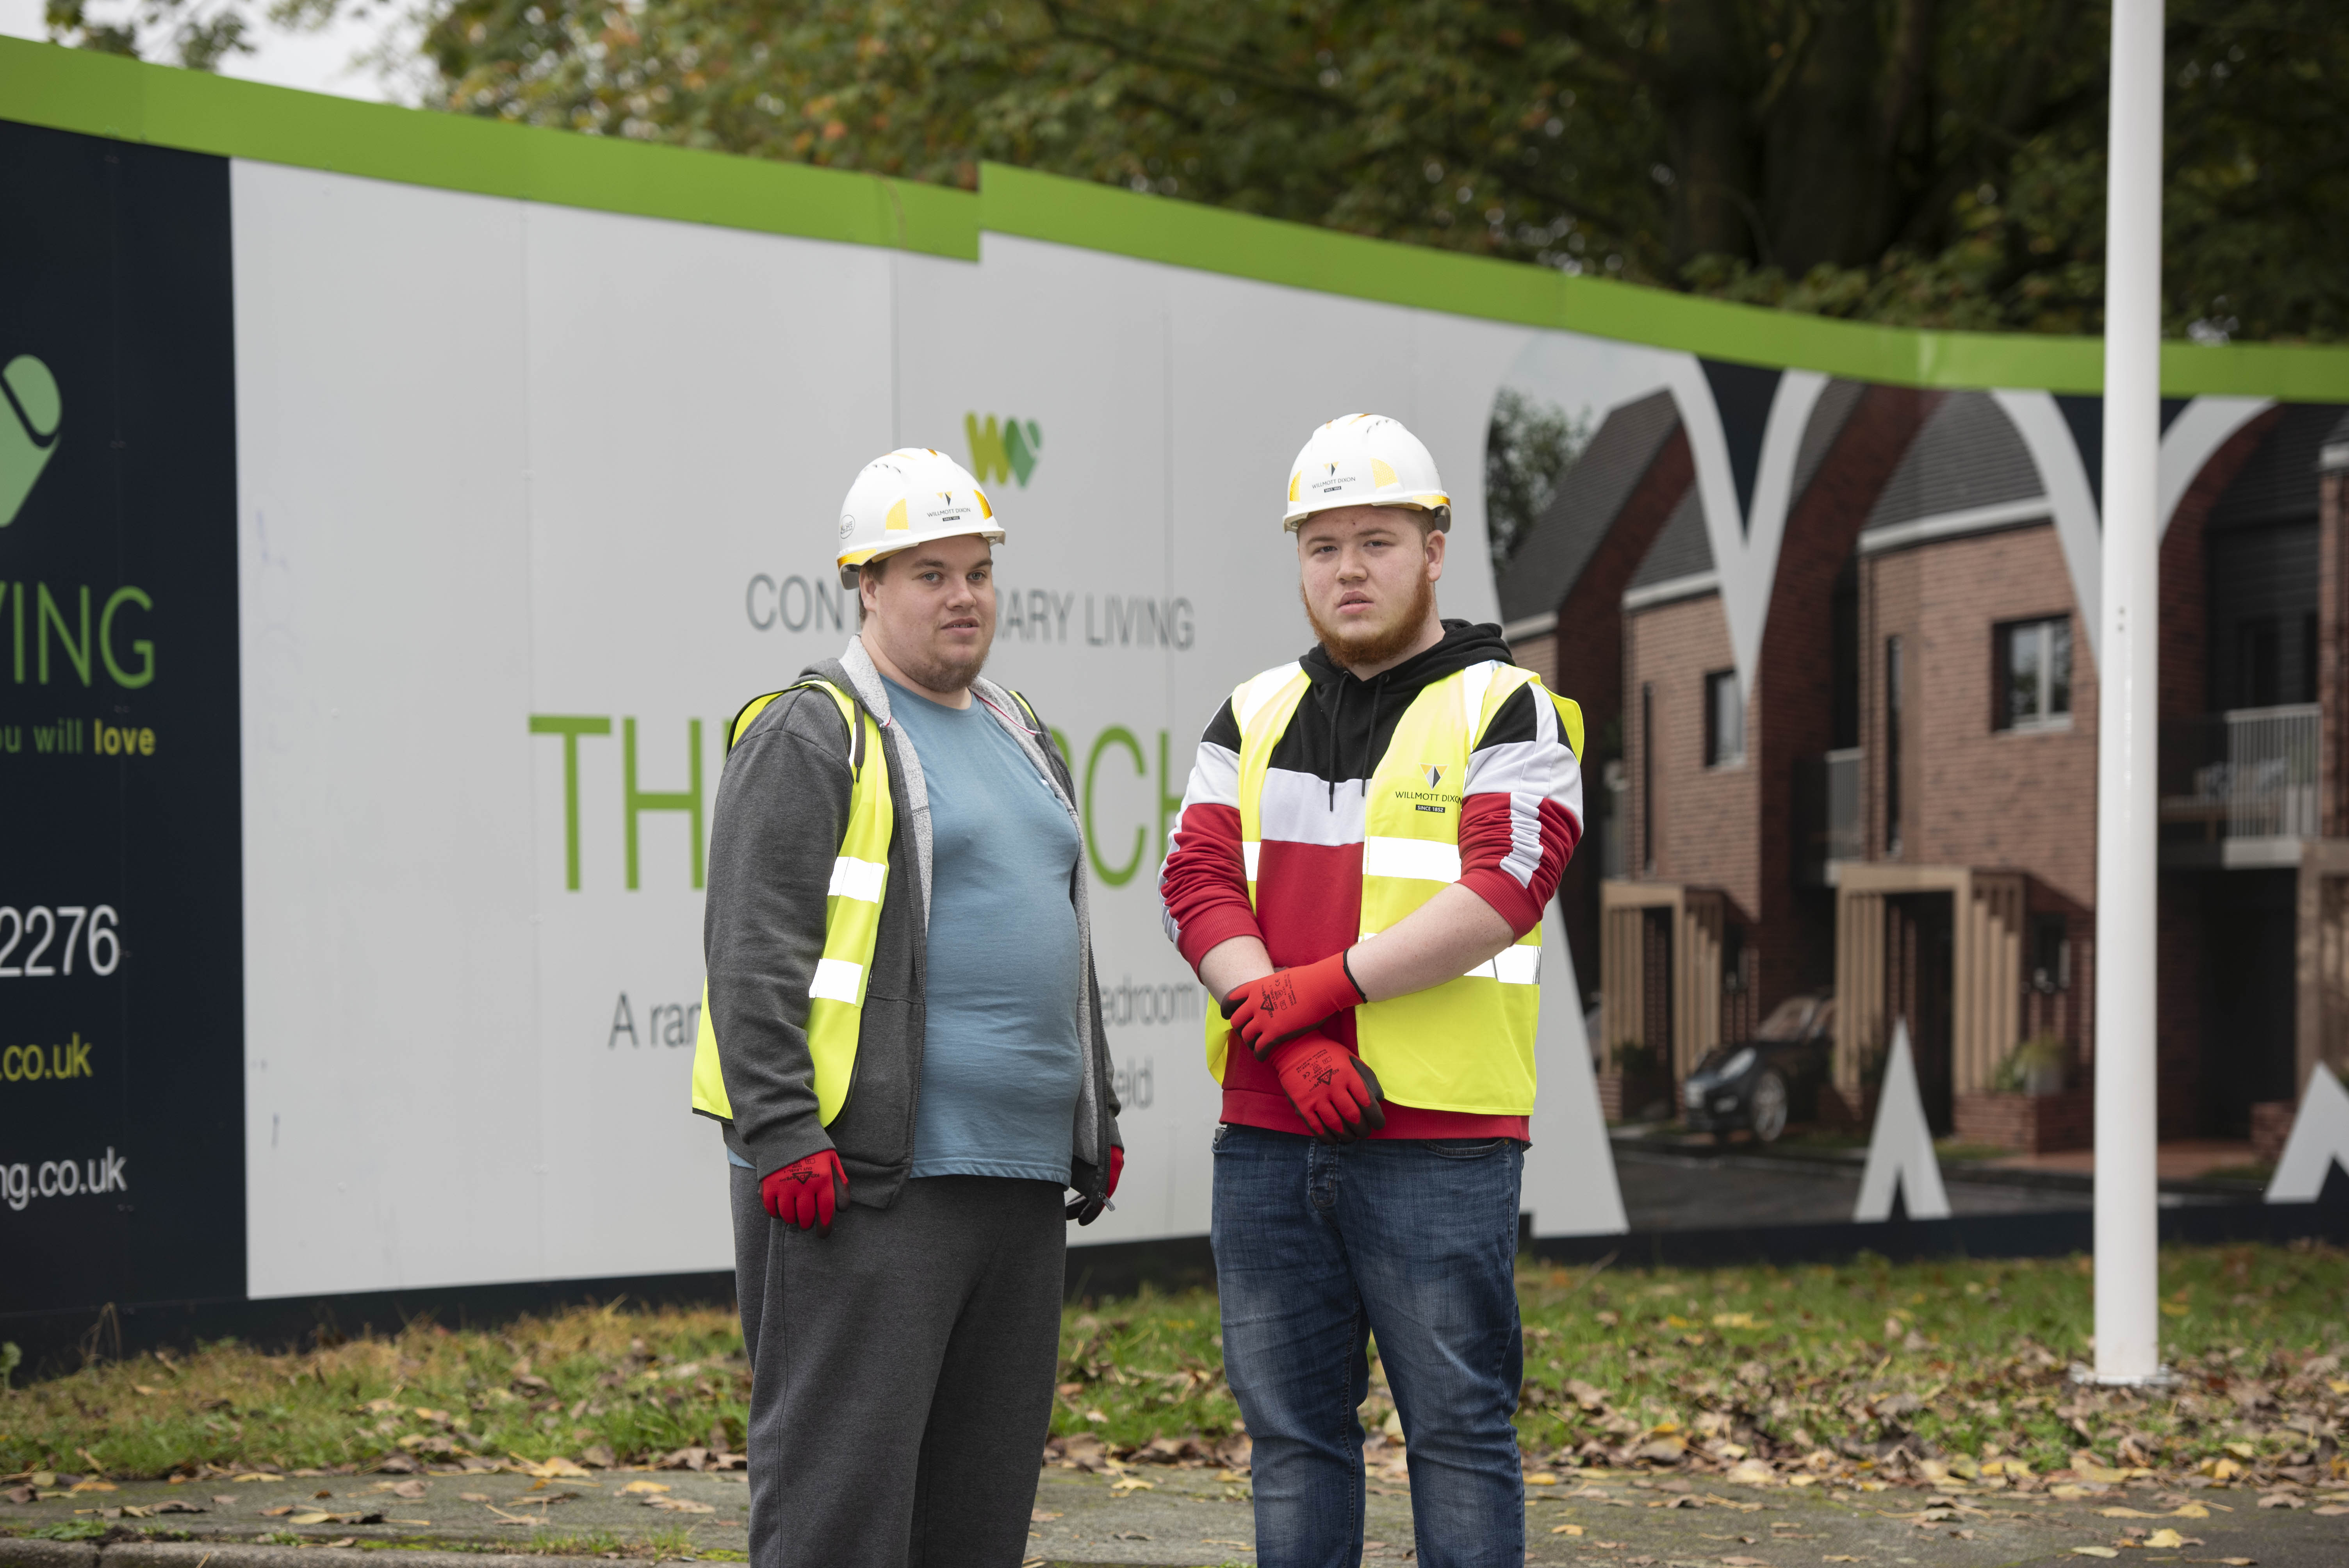 New construction training hub helping unemployed